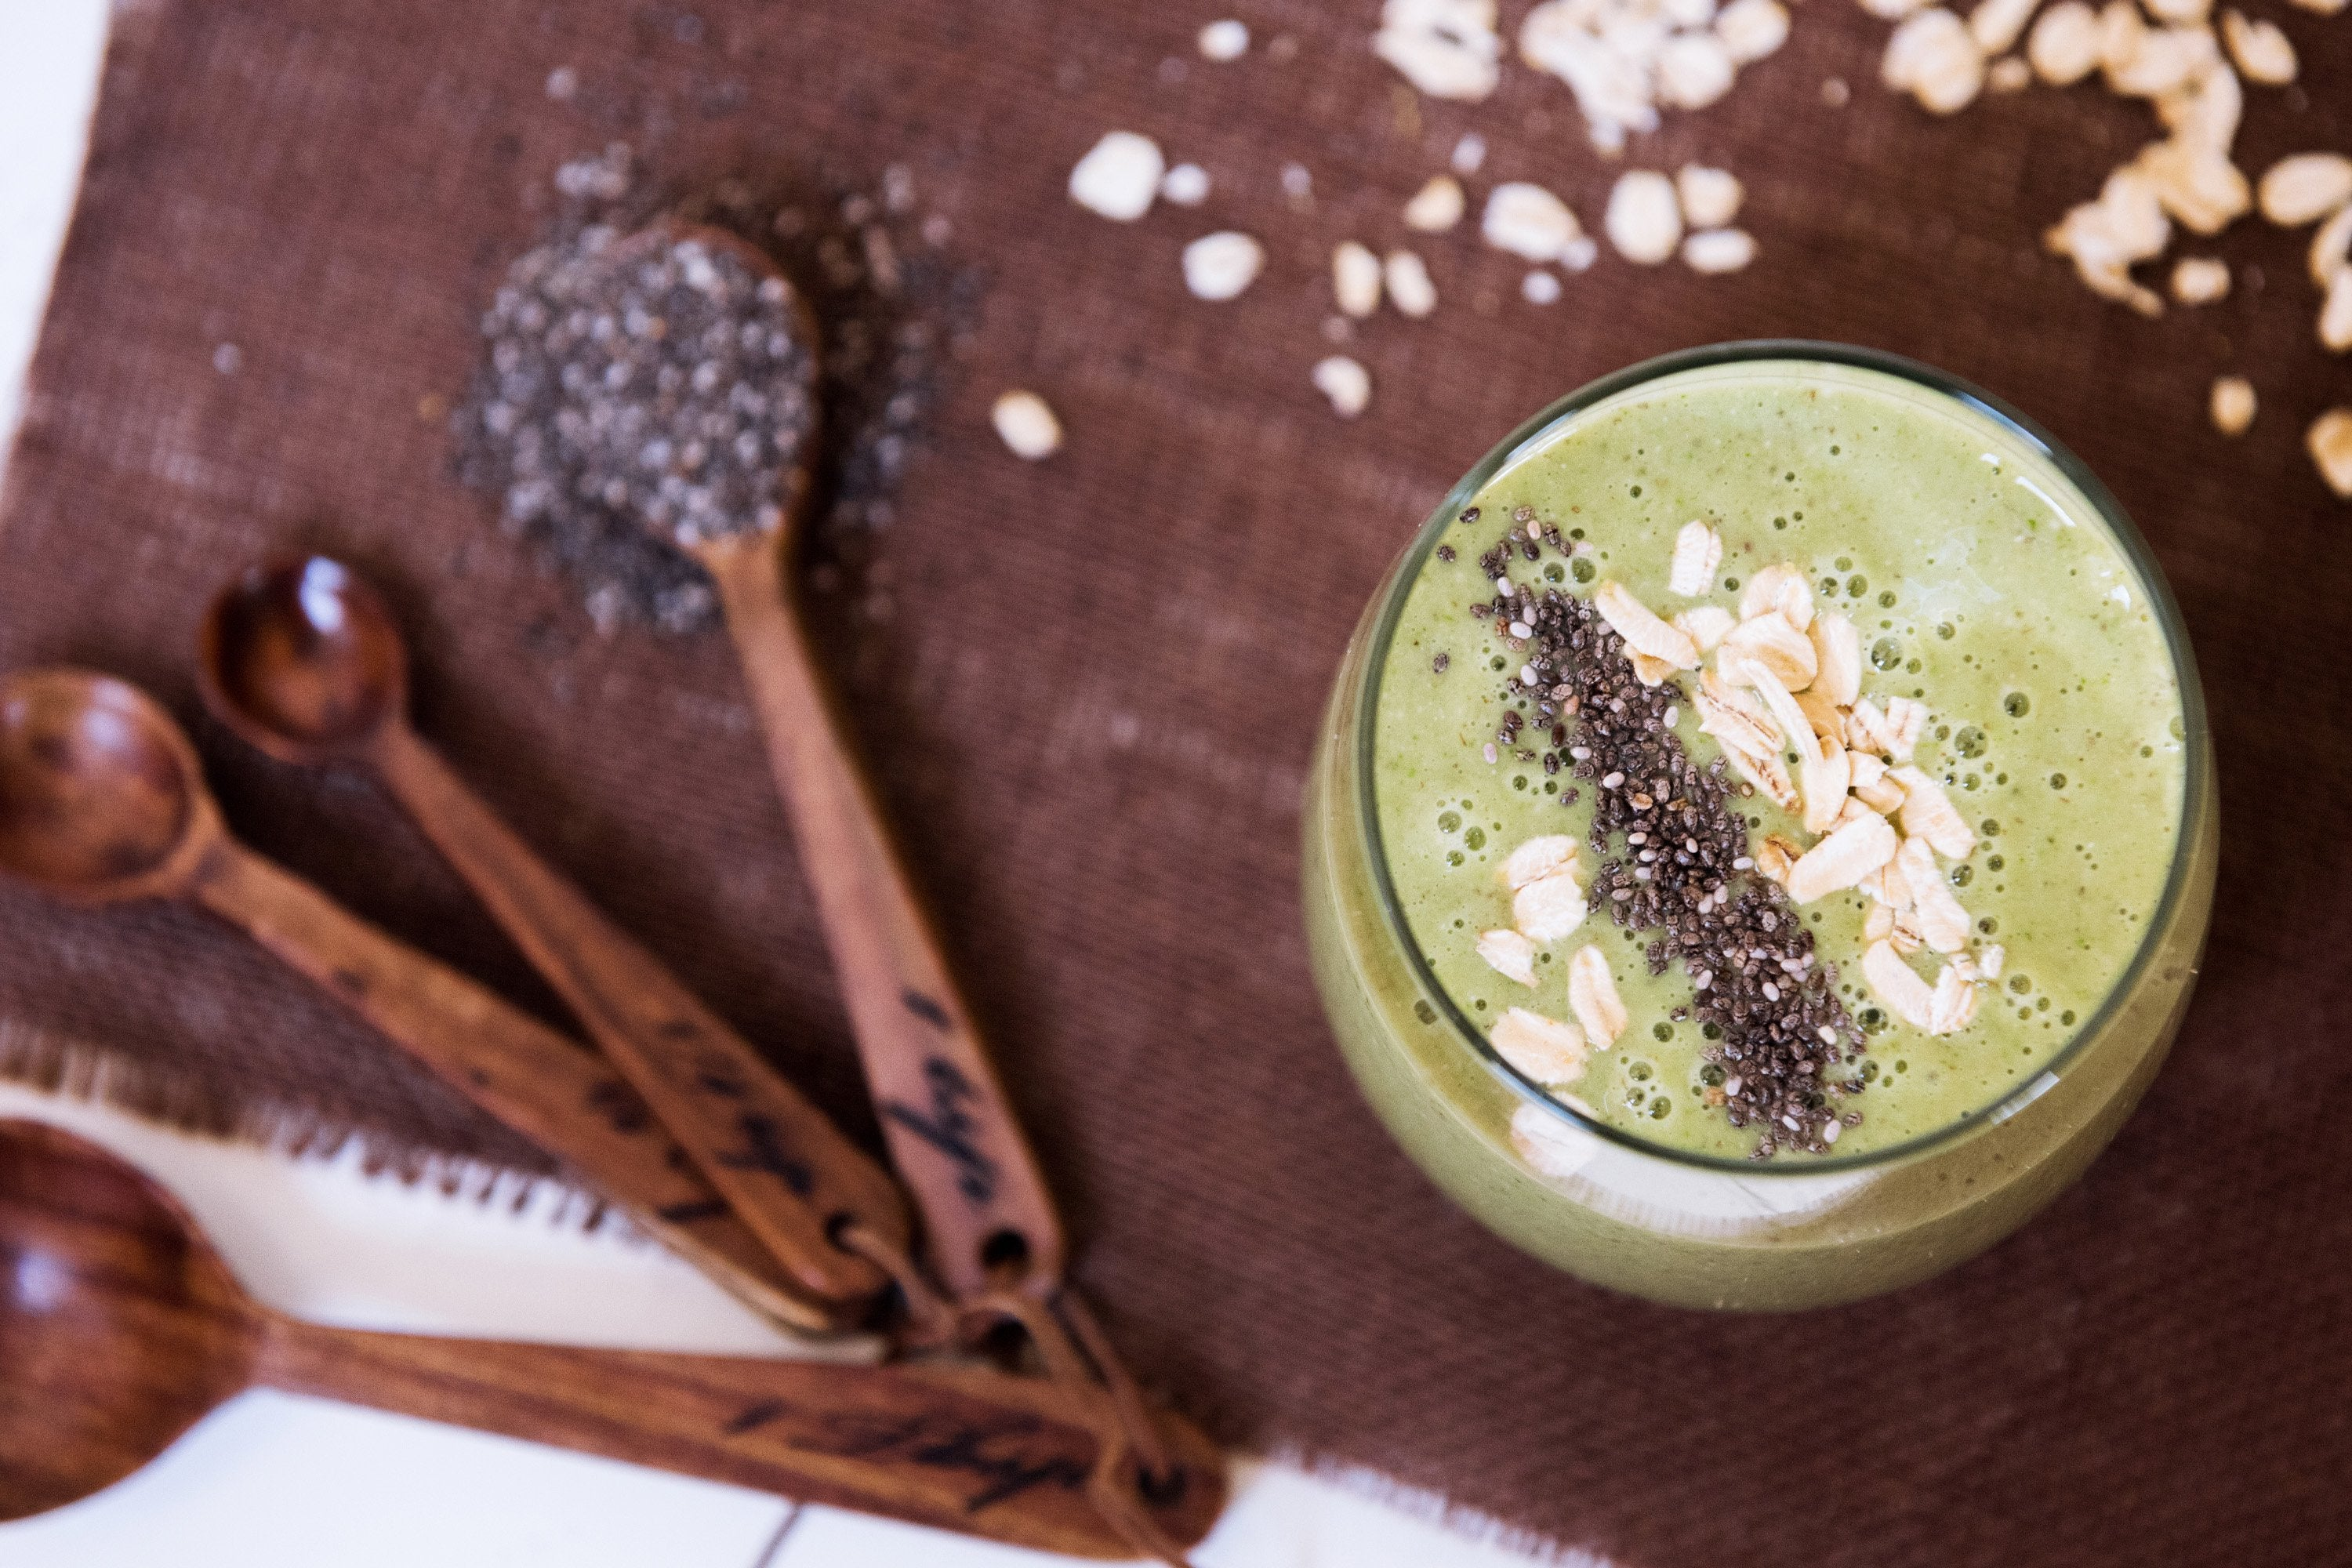 Creamy Banana, Oatmeal, and Chia Breakfast Smoothie